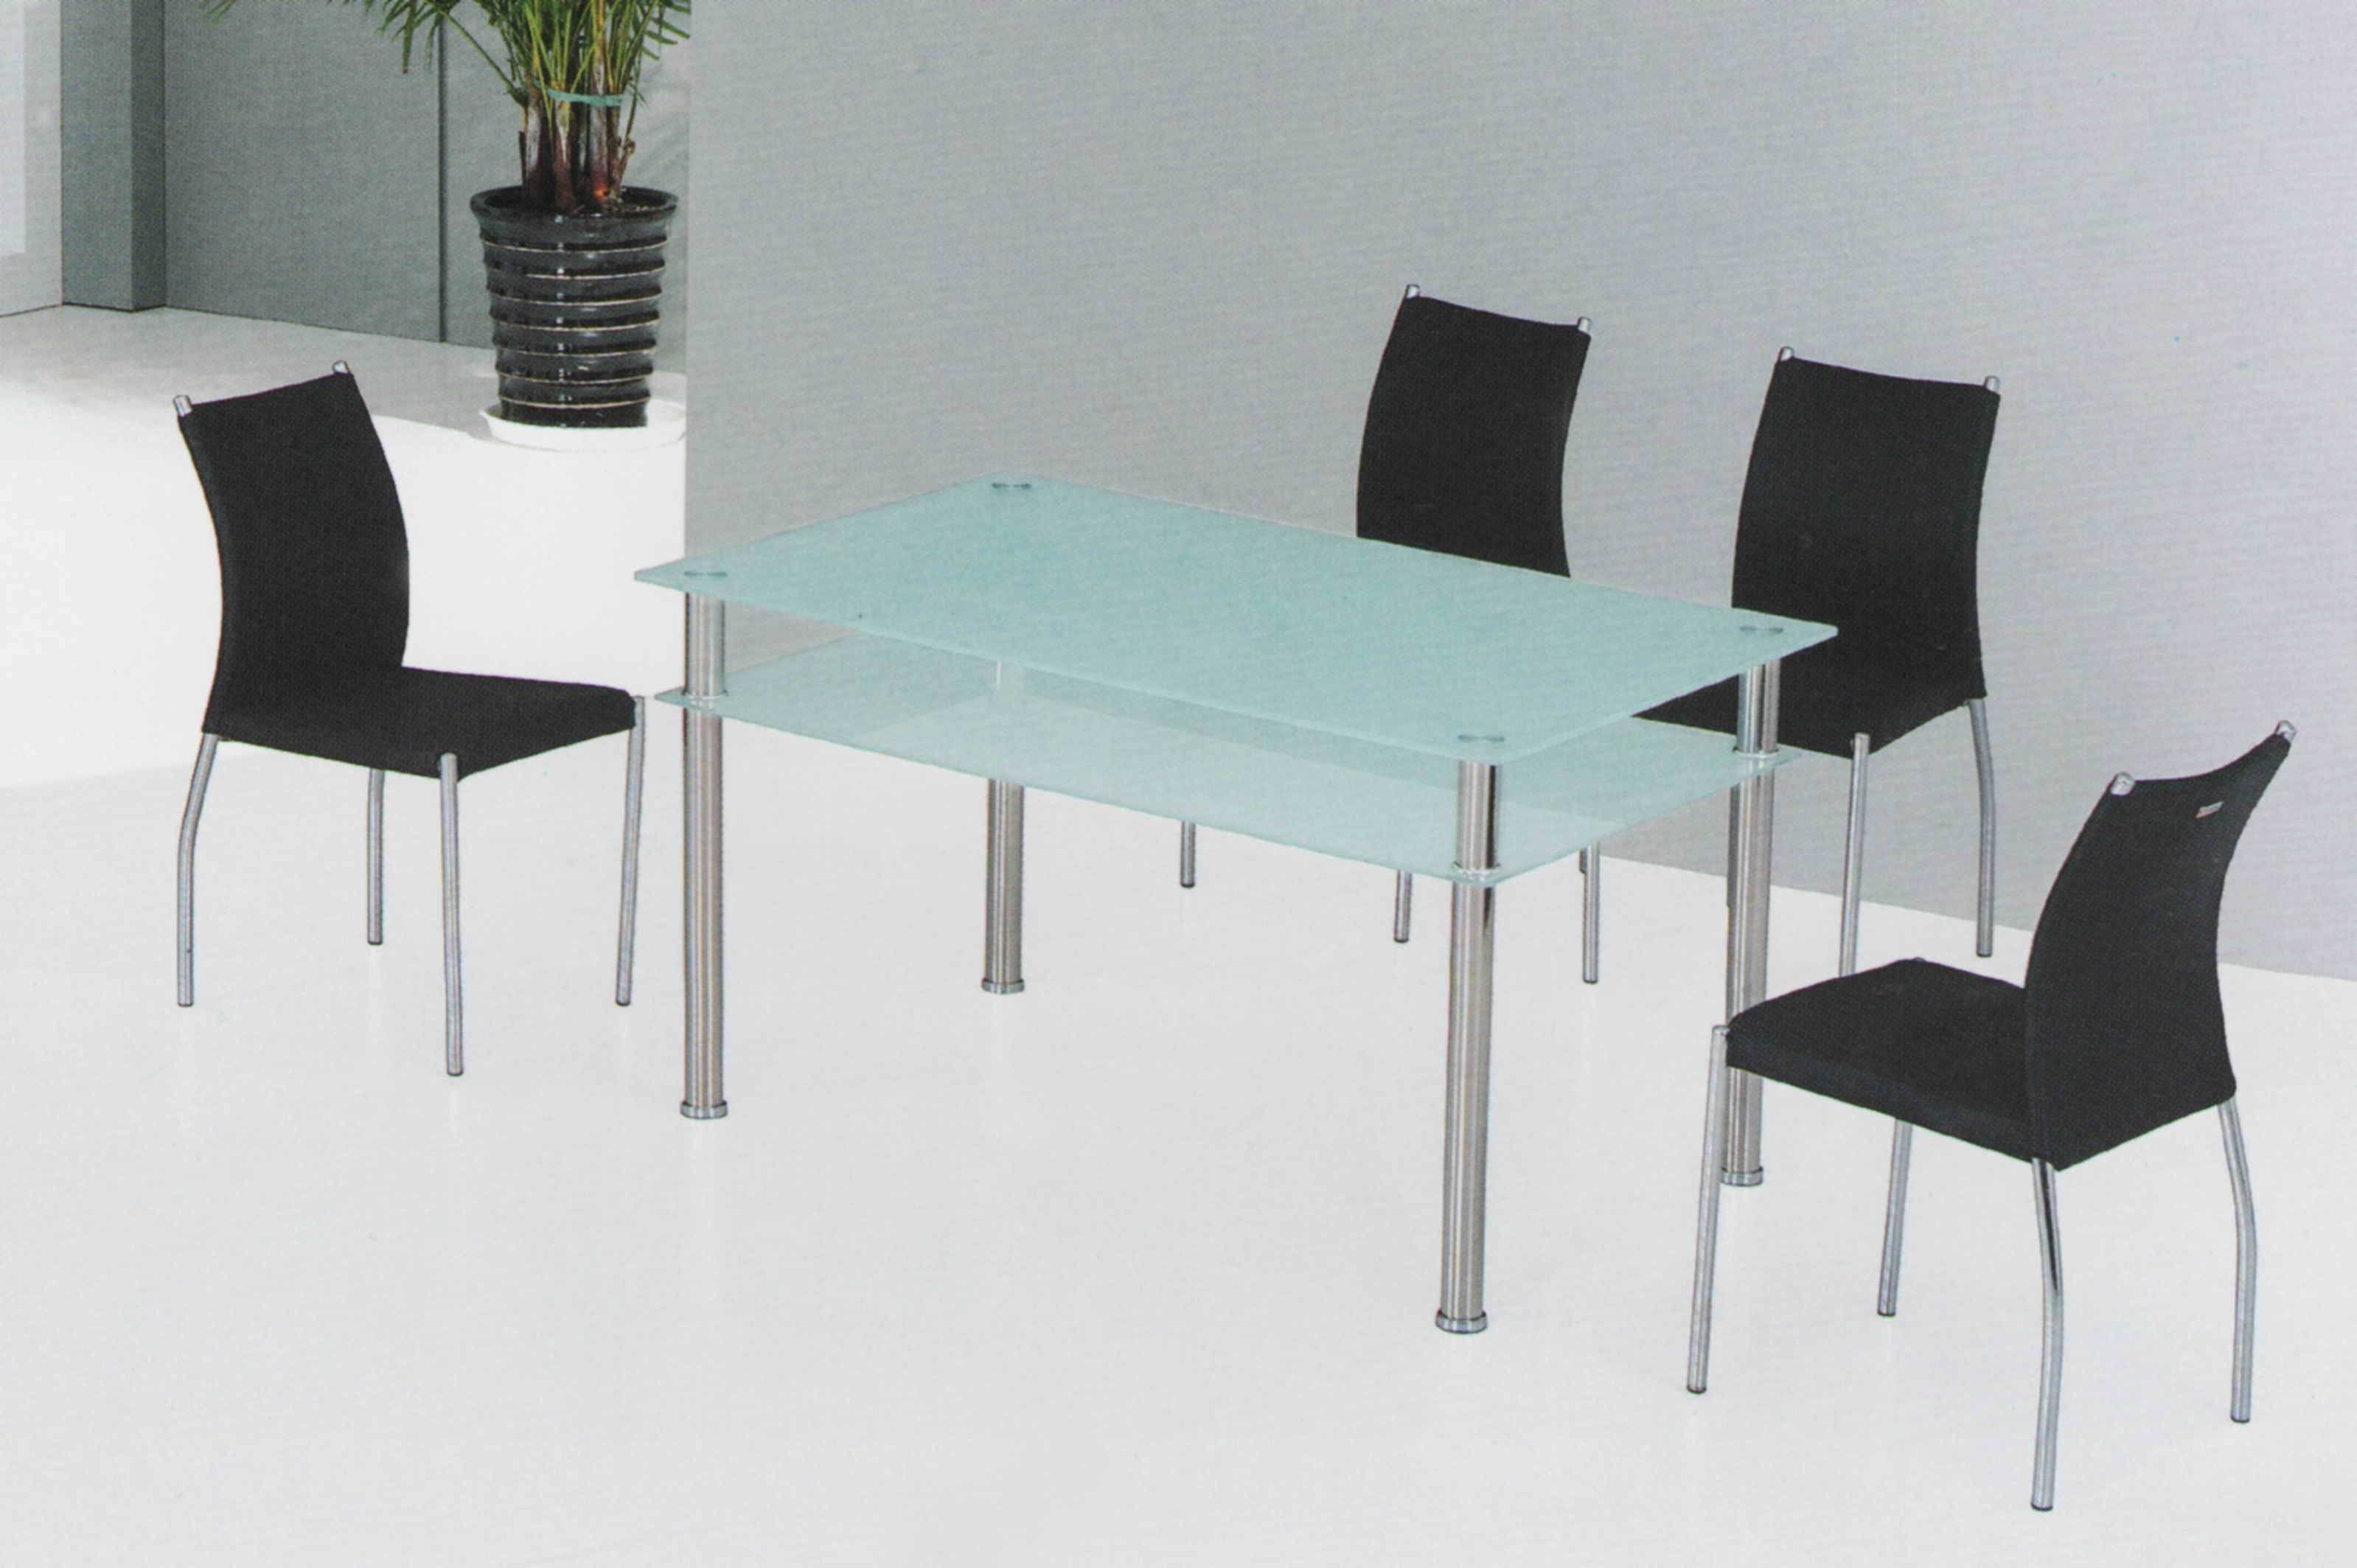 Frosted Green Glass Dining Table | Doces Abobrinhas | Pinterest ...